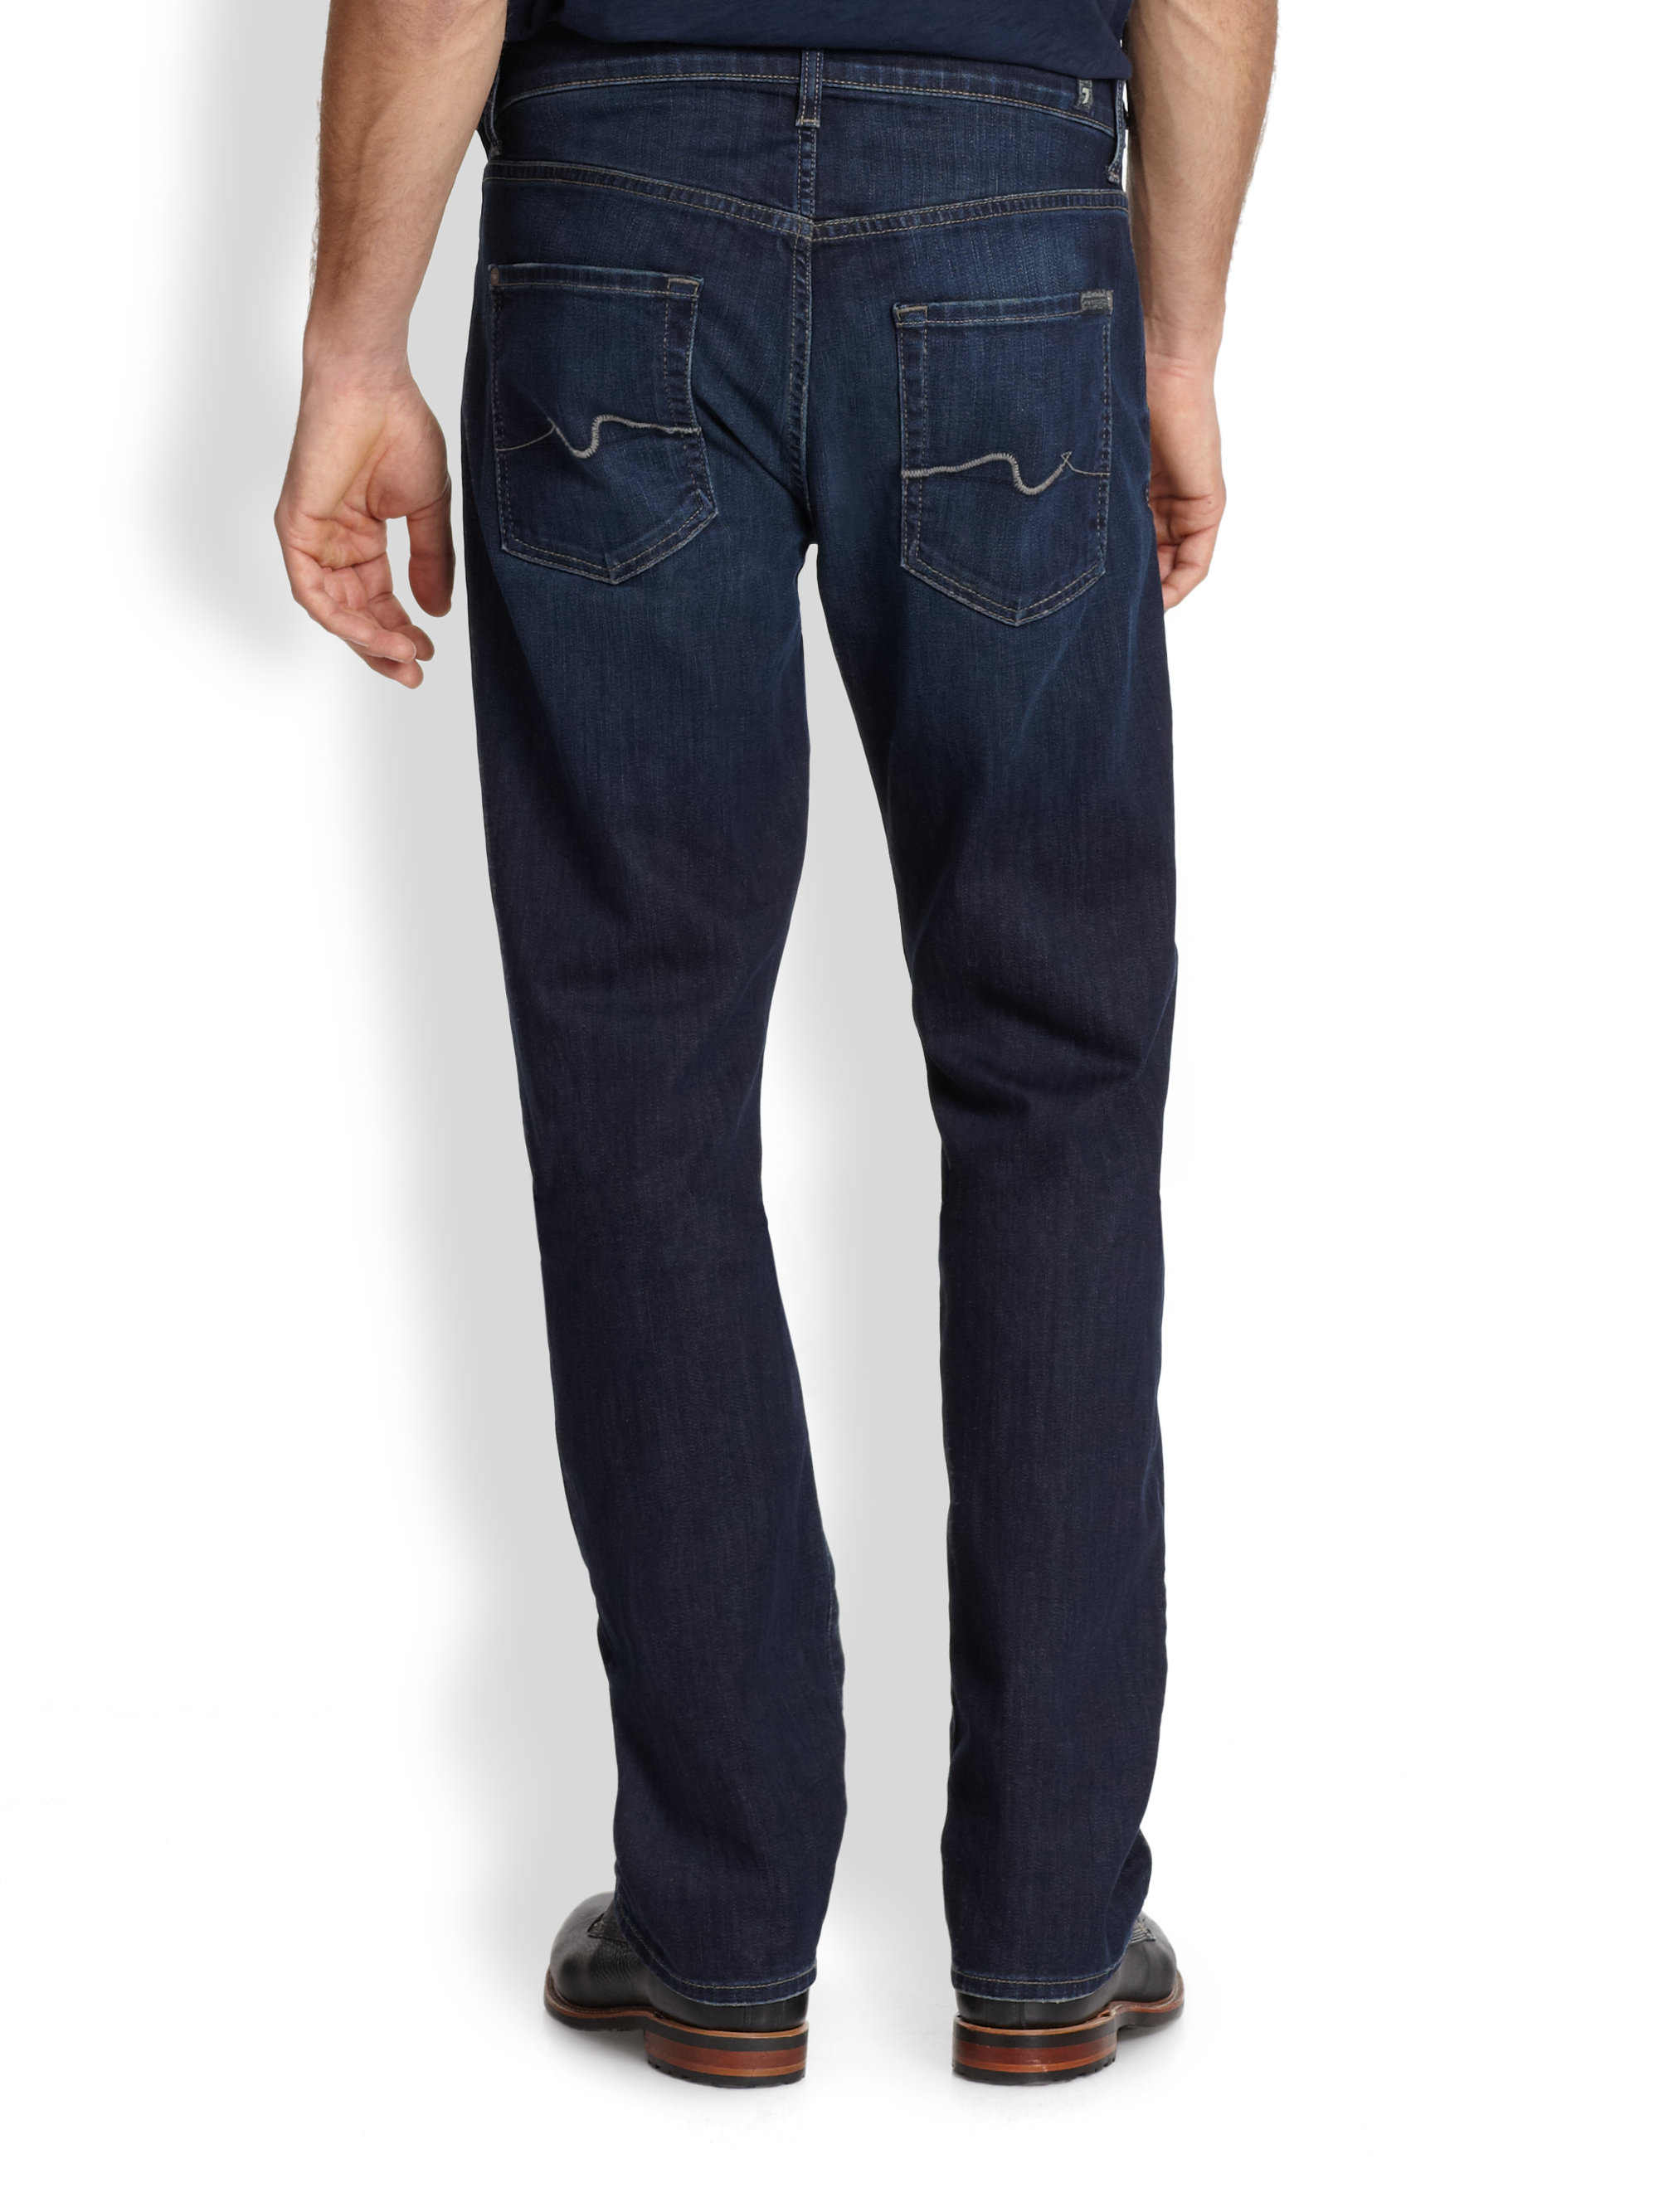 lyst 7 for all mankind luxe performance carsen modern straight leg jeans in blue for men. Black Bedroom Furniture Sets. Home Design Ideas